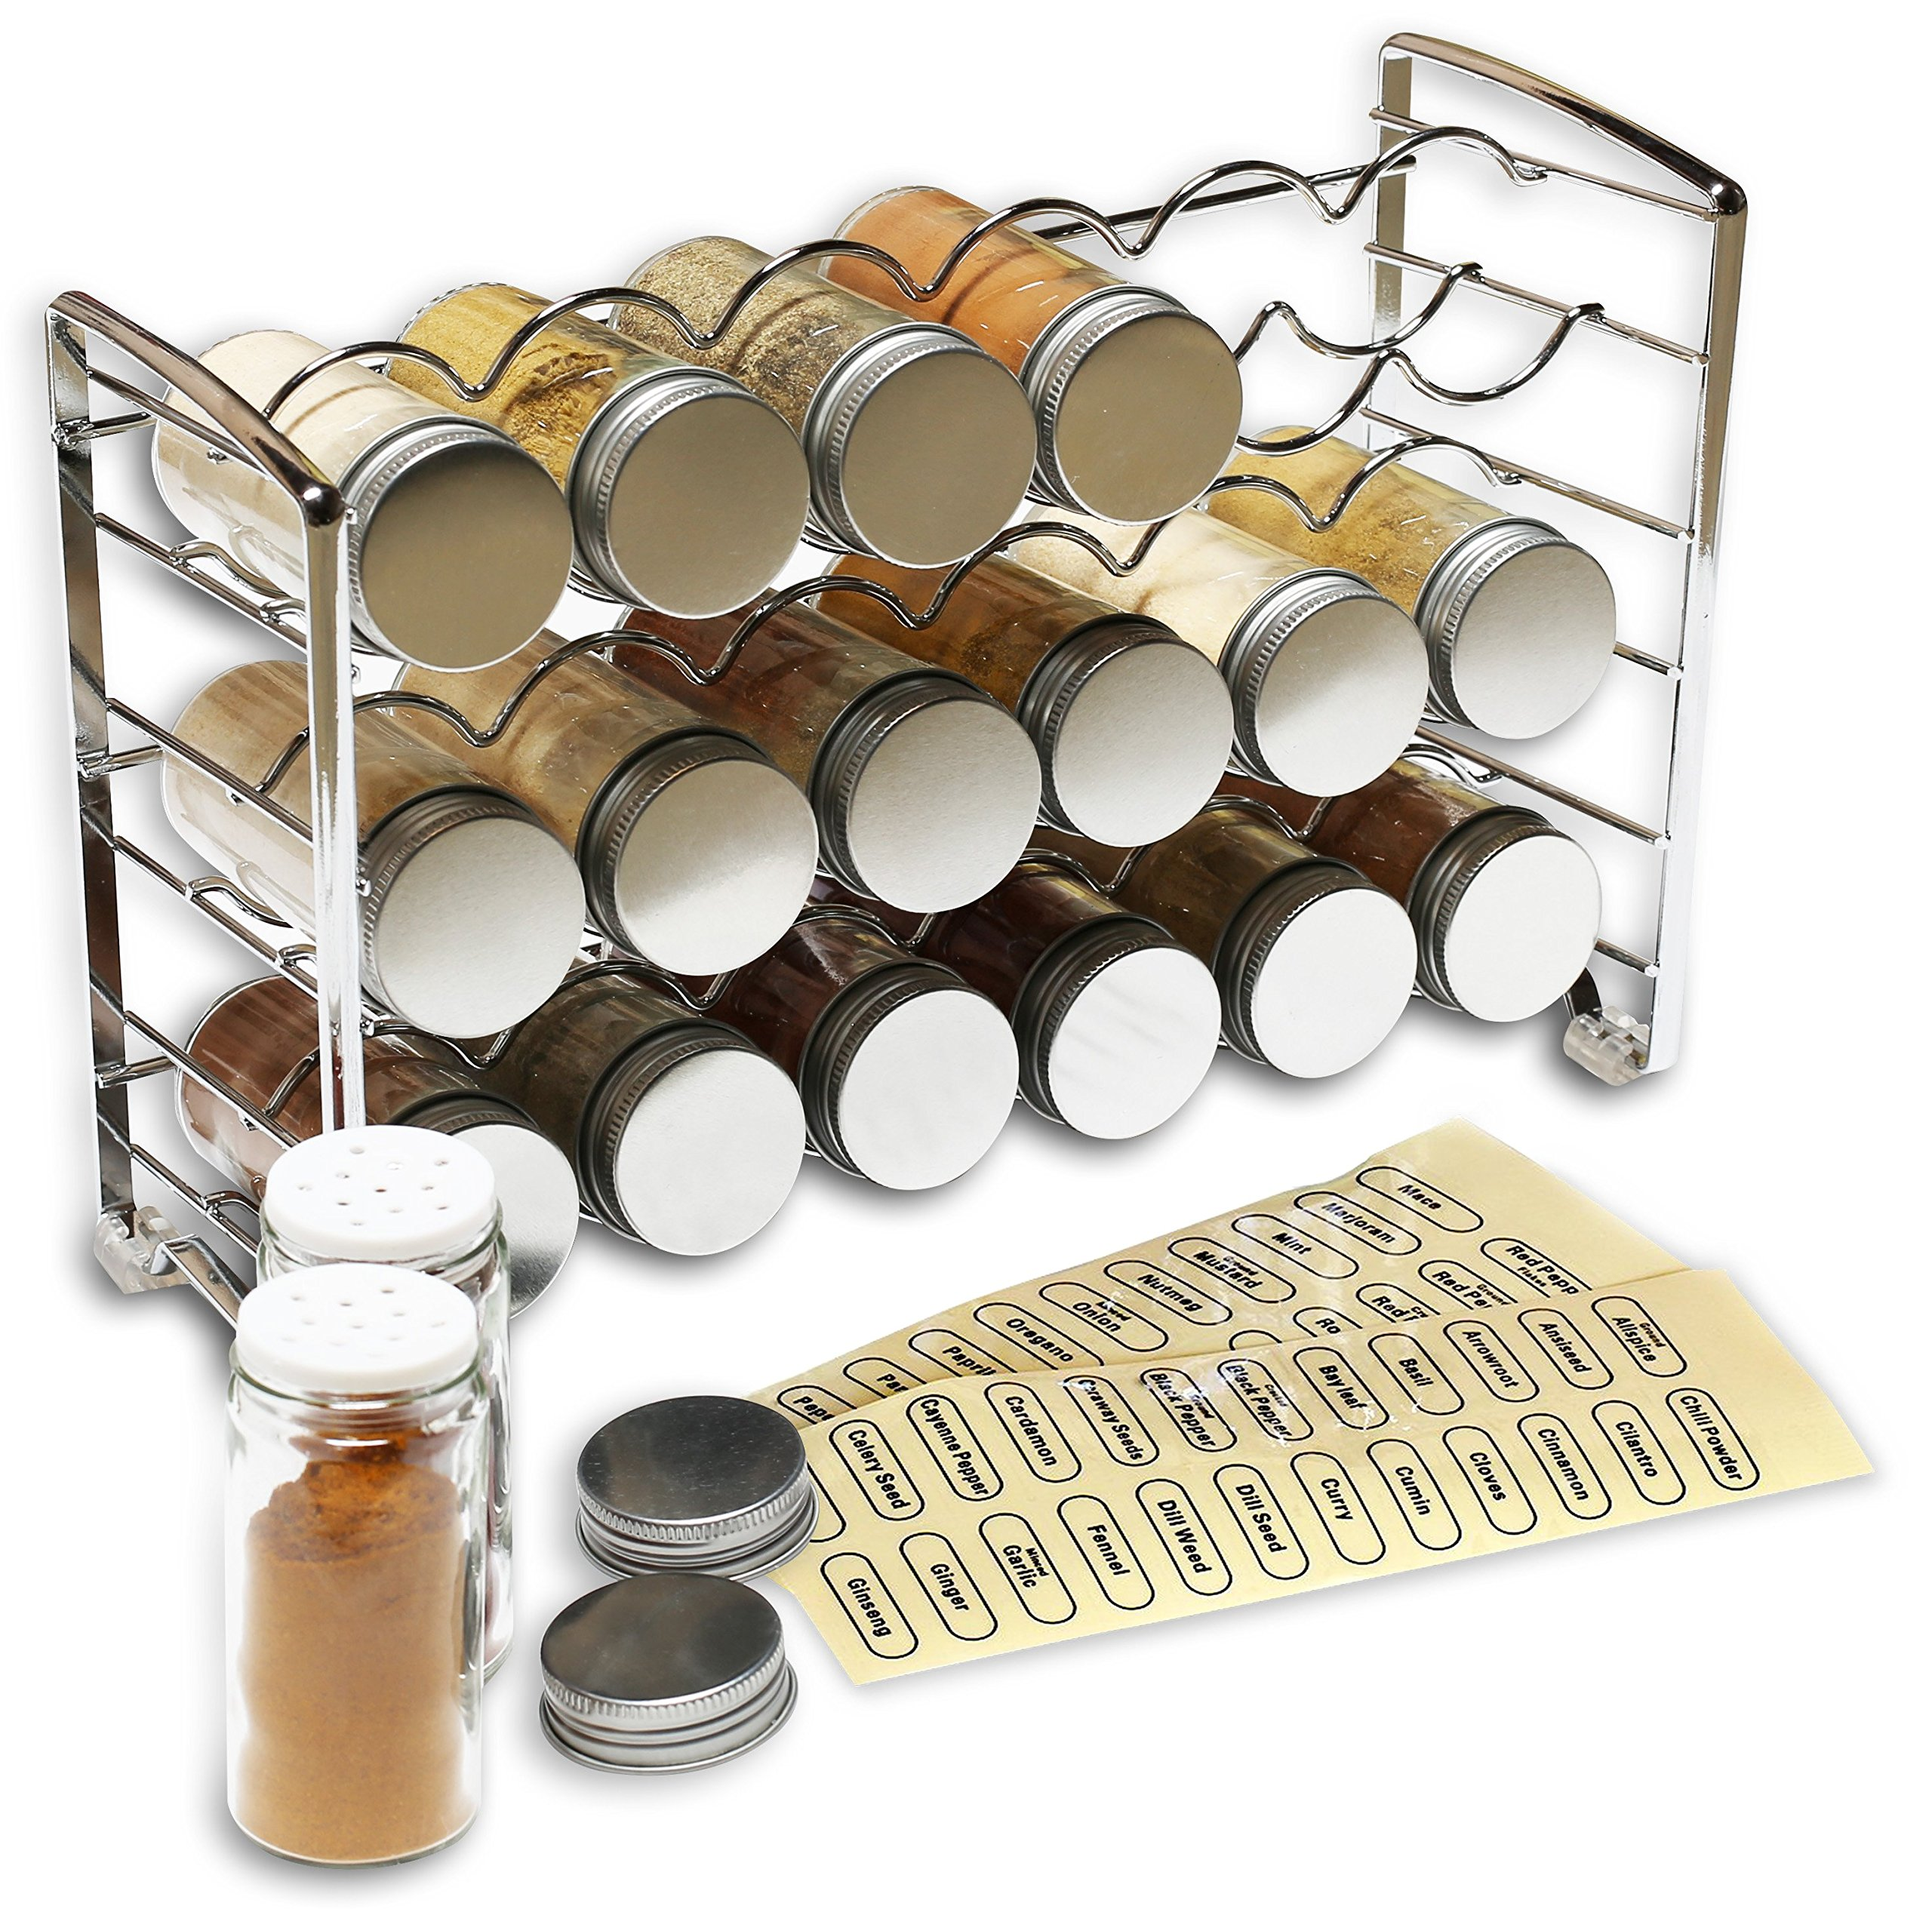 DecoBros Spice Rack Stand holder with 18 bottles and 48 Labels, Chrome by Deco Brothers